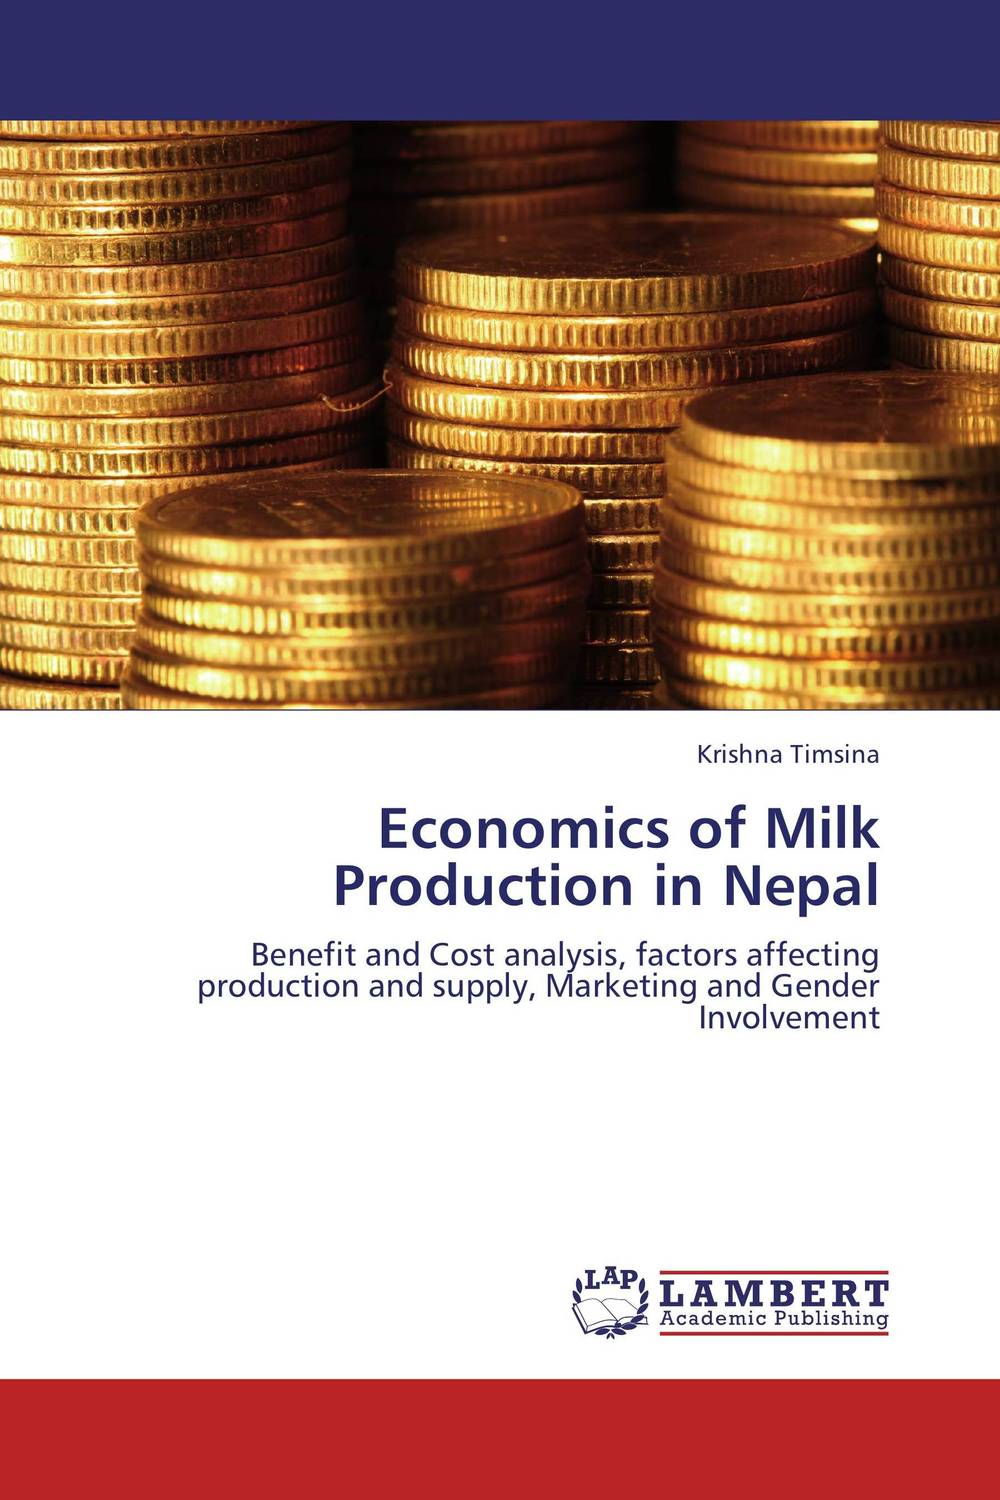 Economics of Milk Production in Nepal shoji lal bairwa rakesh singh and saket kushwaha economics of milk marketing